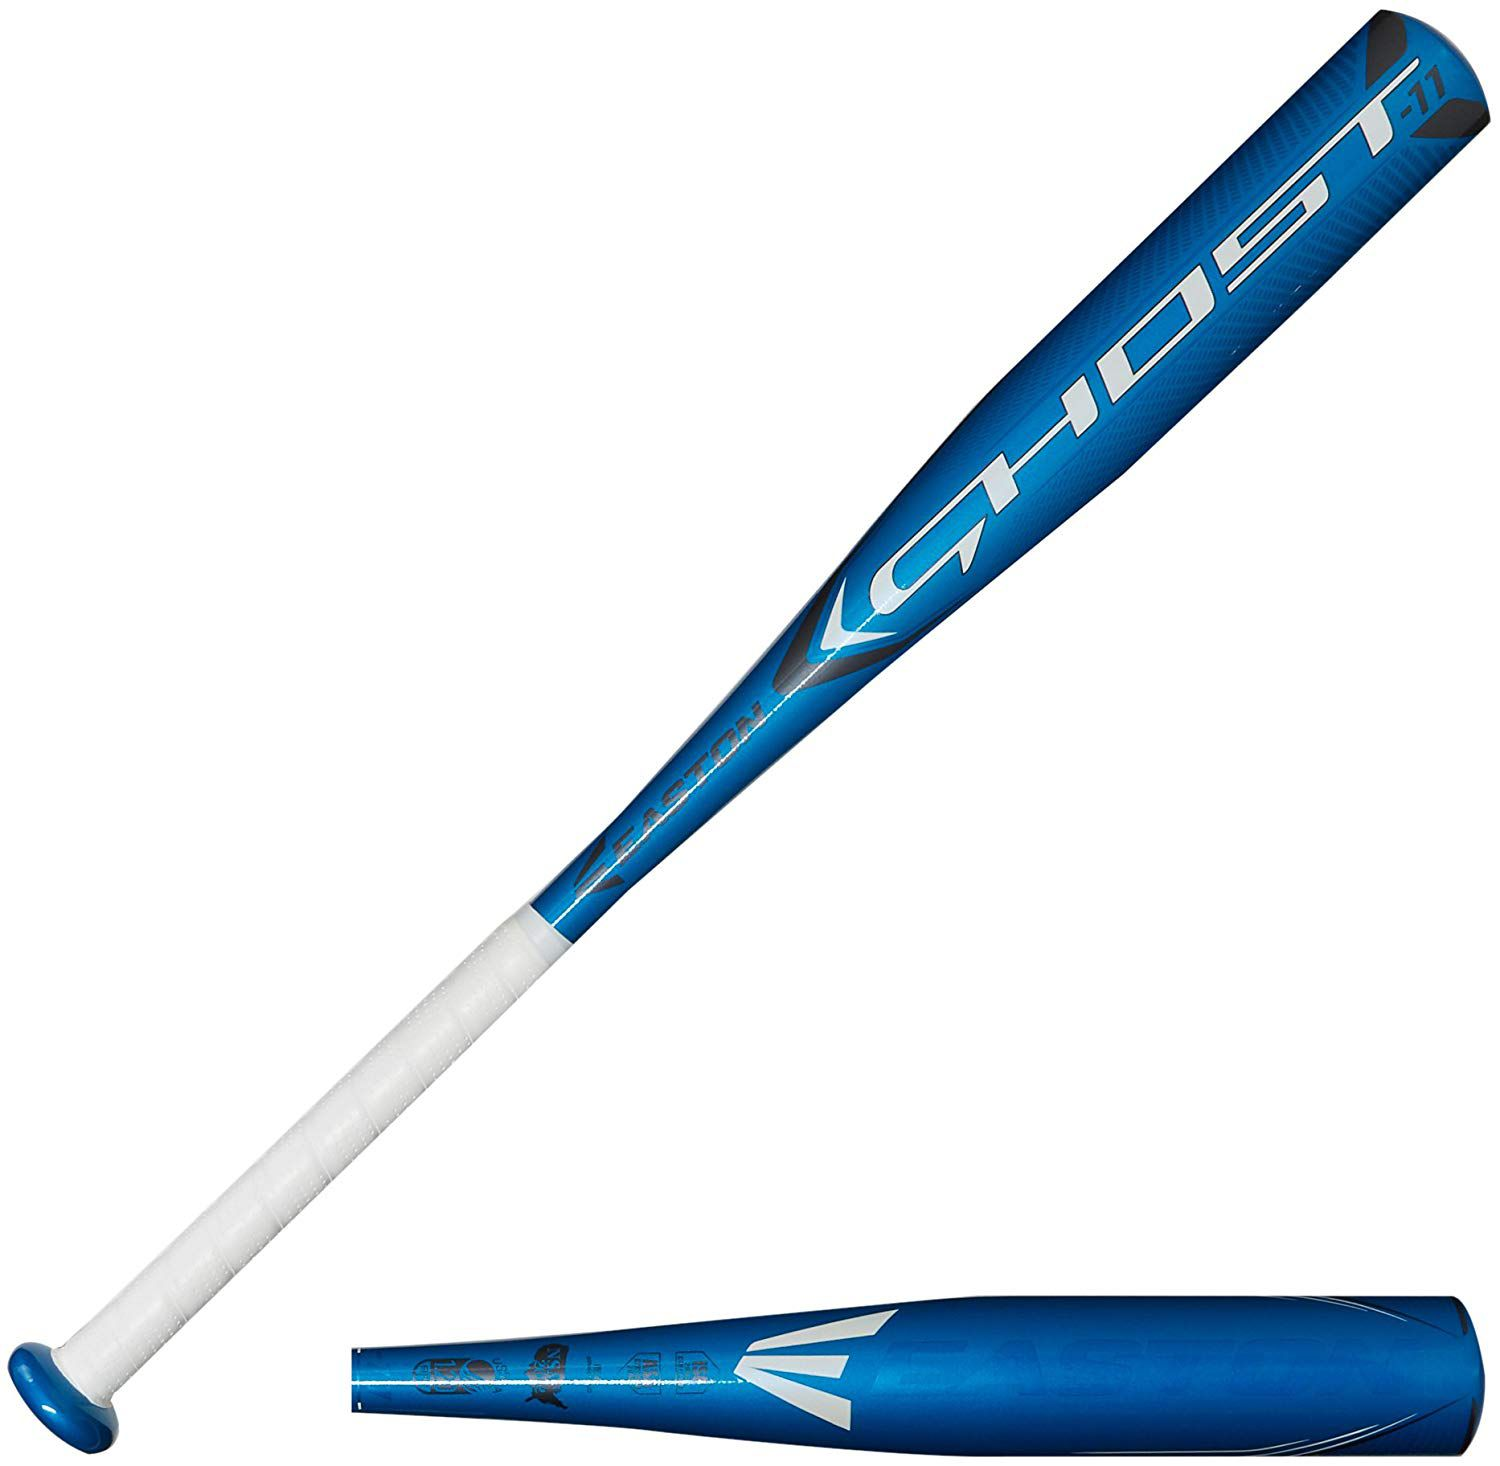 Best Slowpitch Softball Bats 2019 The 8 Best Softball Bats of 2019